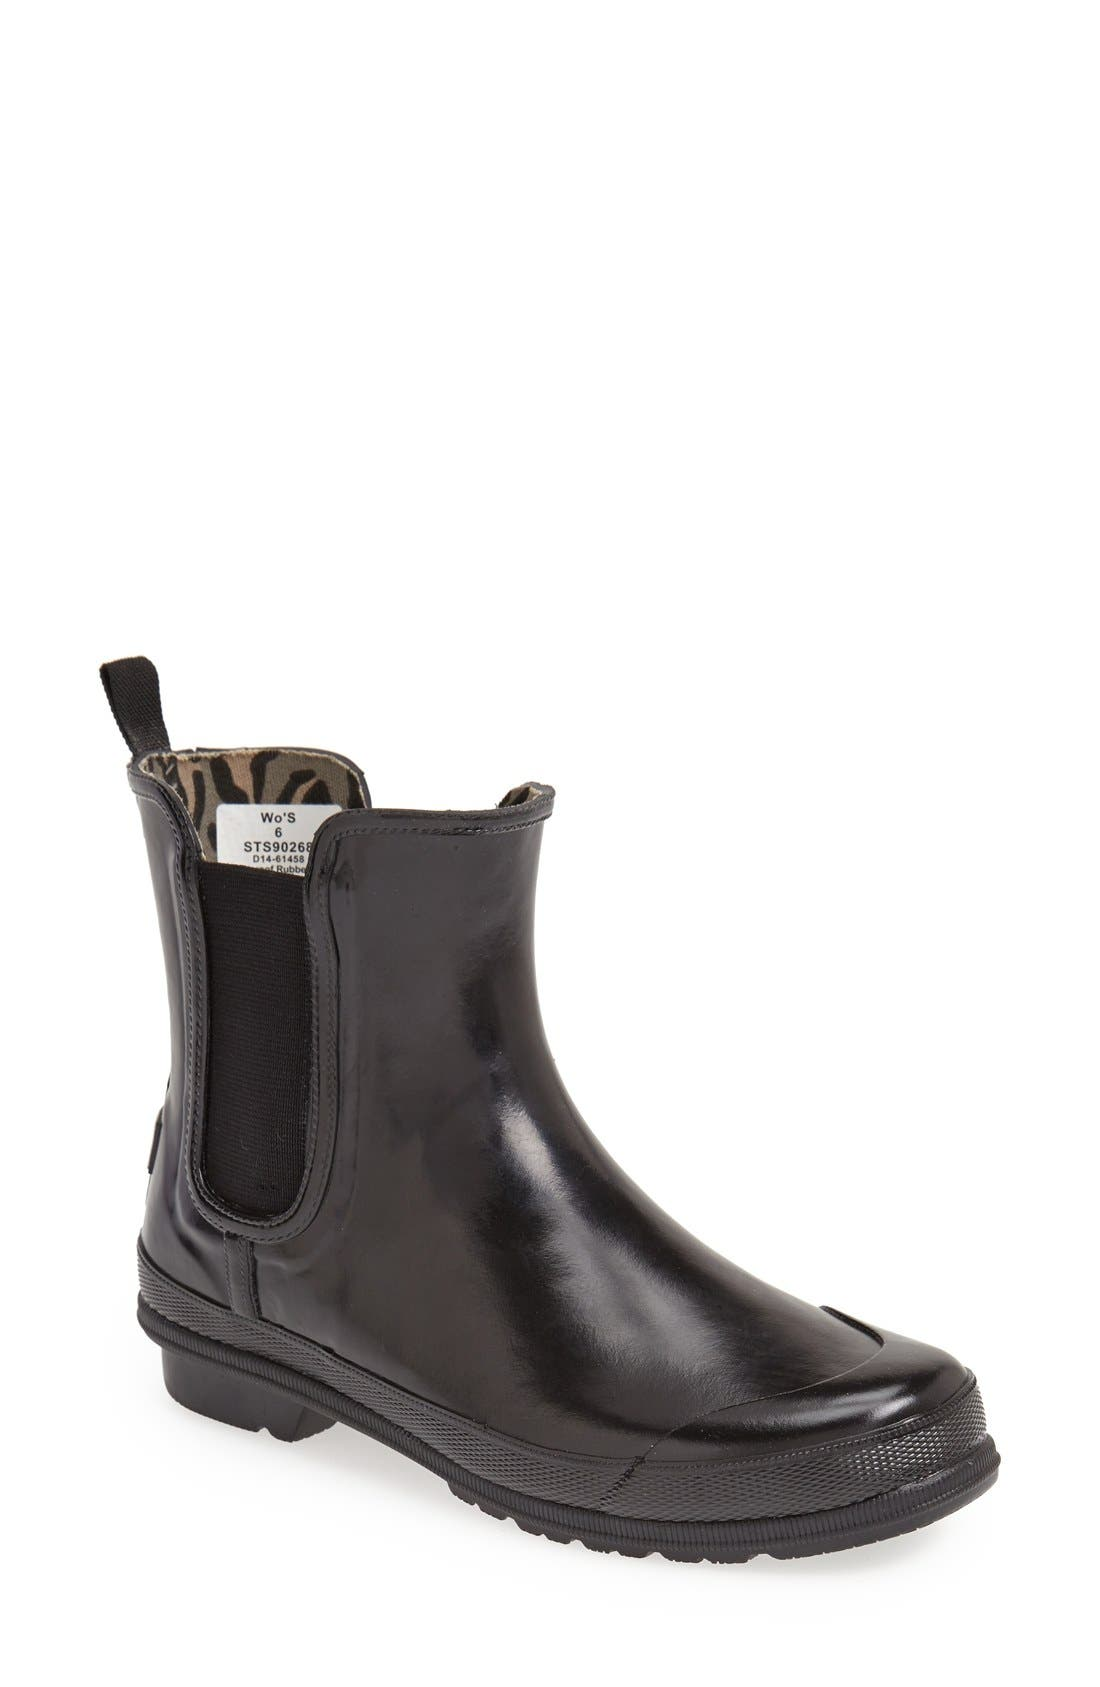 Top-Sider<sup>®</sup> 'Starling' Rubber Rain Boot, Main, color, 001